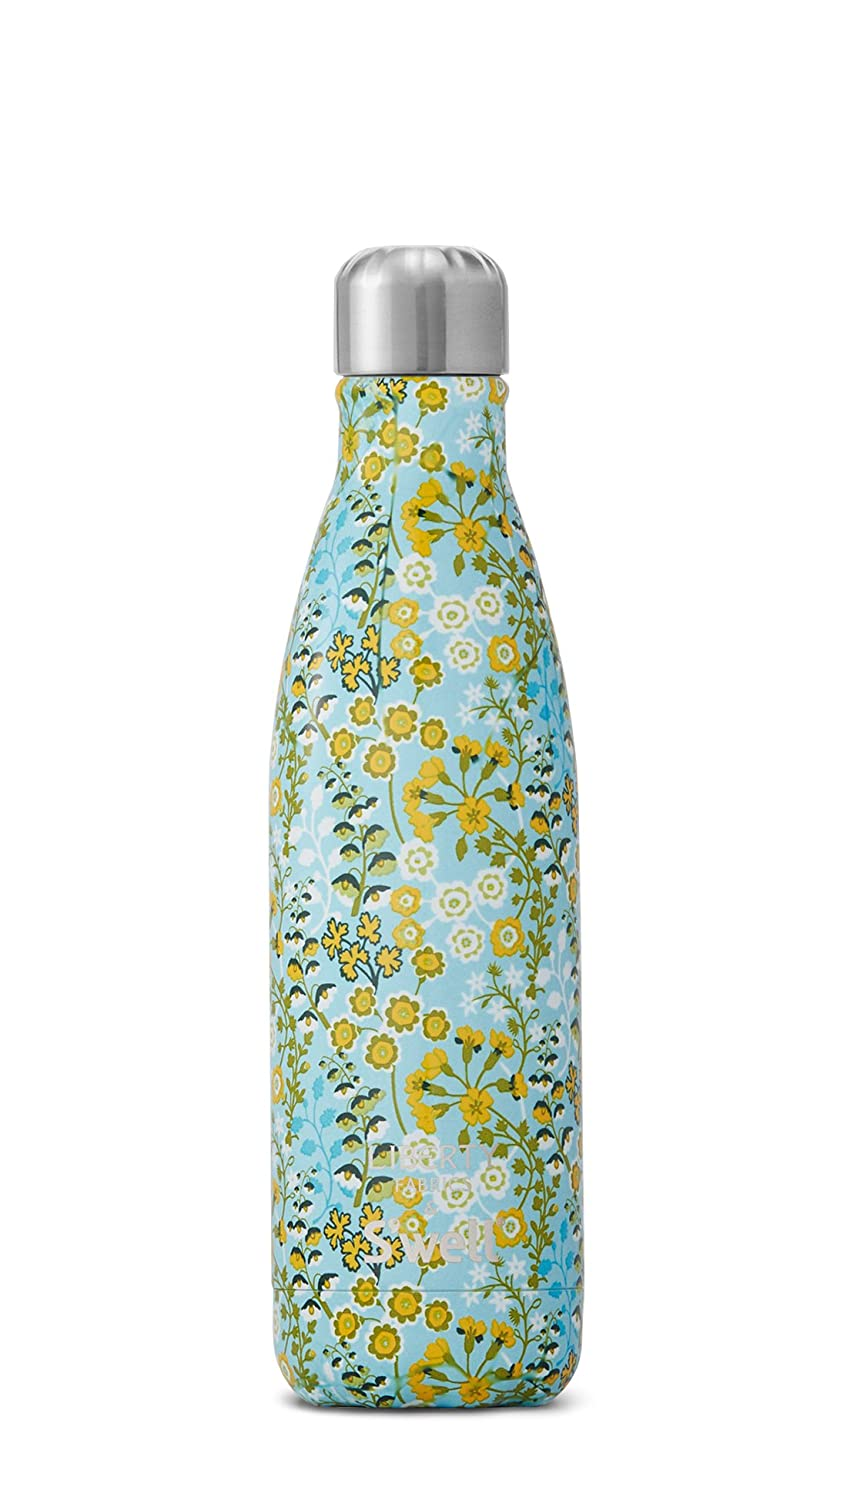 S'well Vacuum Insulated Stainless Steel Water Bottle, 500ml Liberty London Betsy Ann S'well 10017-A18-08760